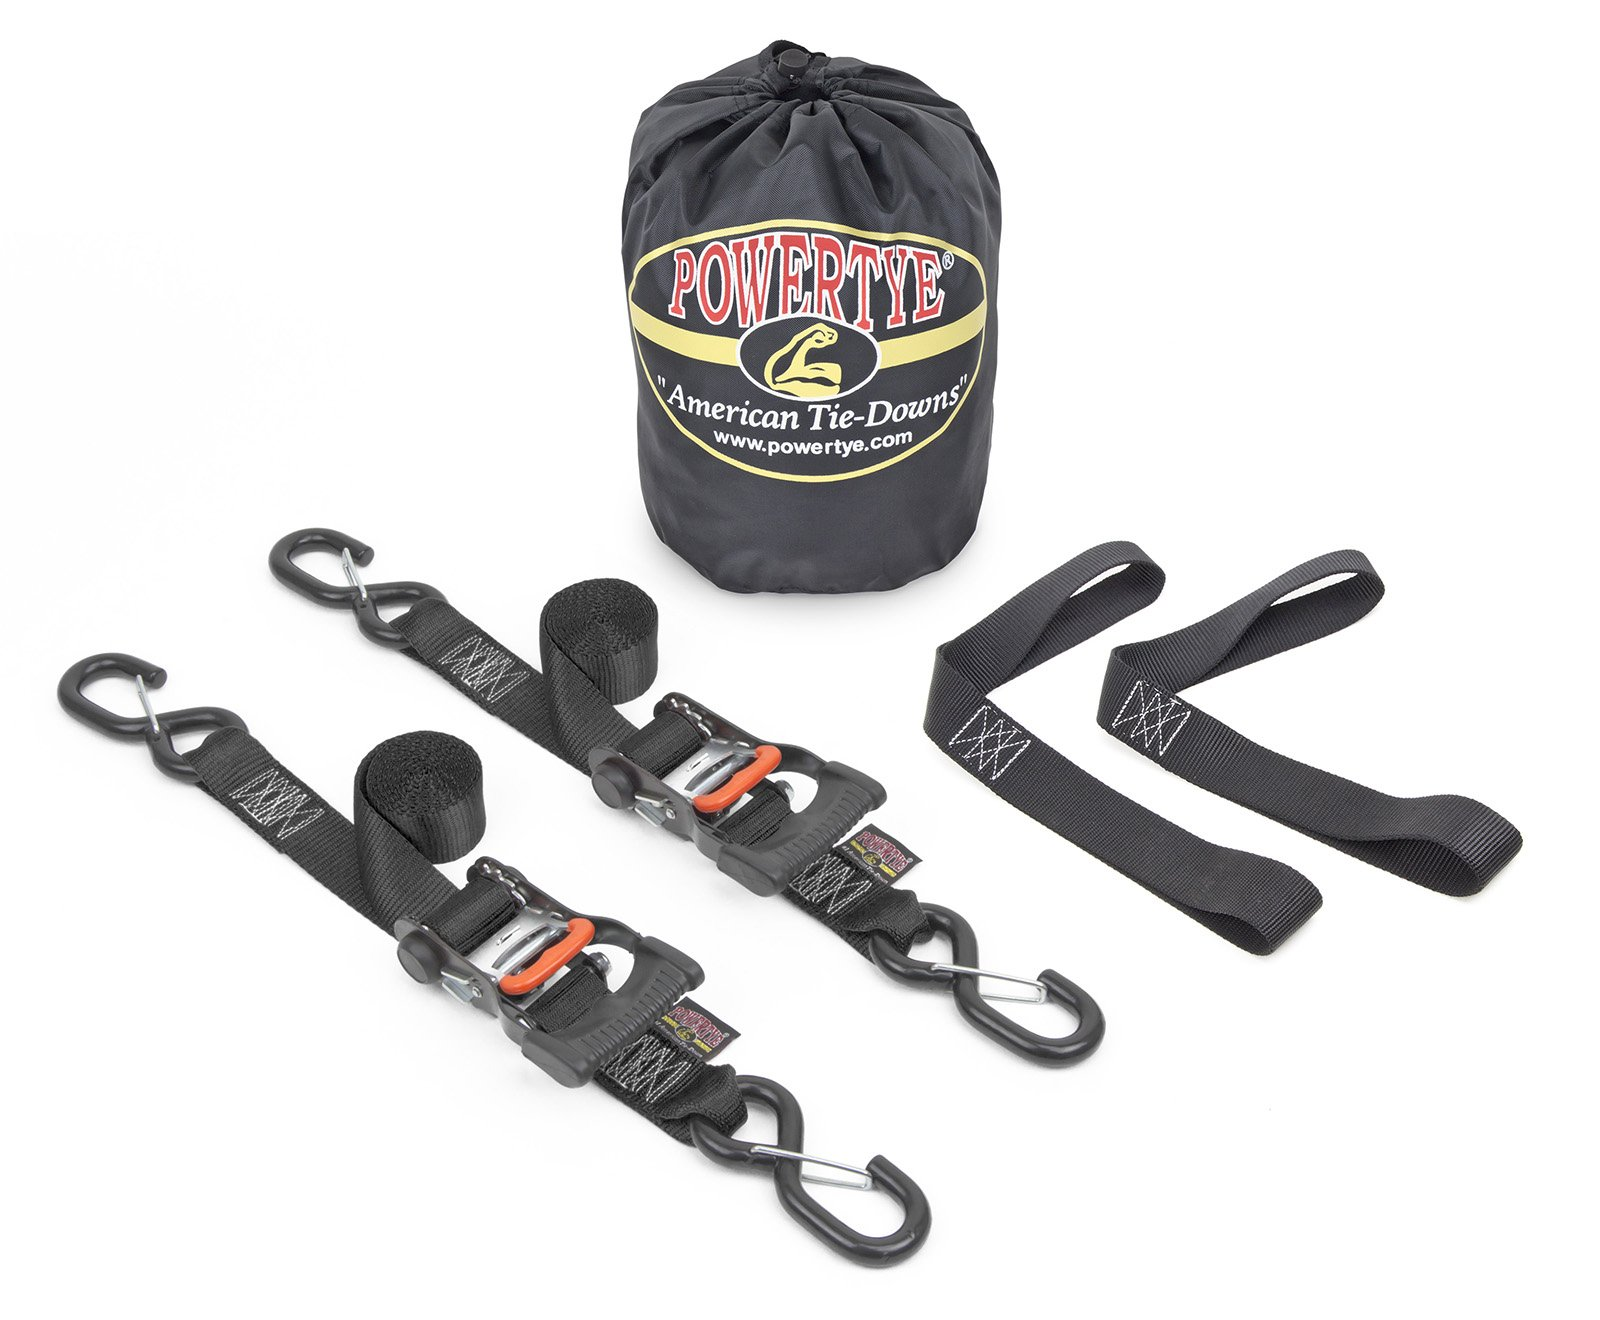 1½'' x 6ft PowerTye Made in USA Ergonomic Ratchet Tie-Down Kit with 1½''x18'' Soft-Tyes and Storage Bag, Black (pair)